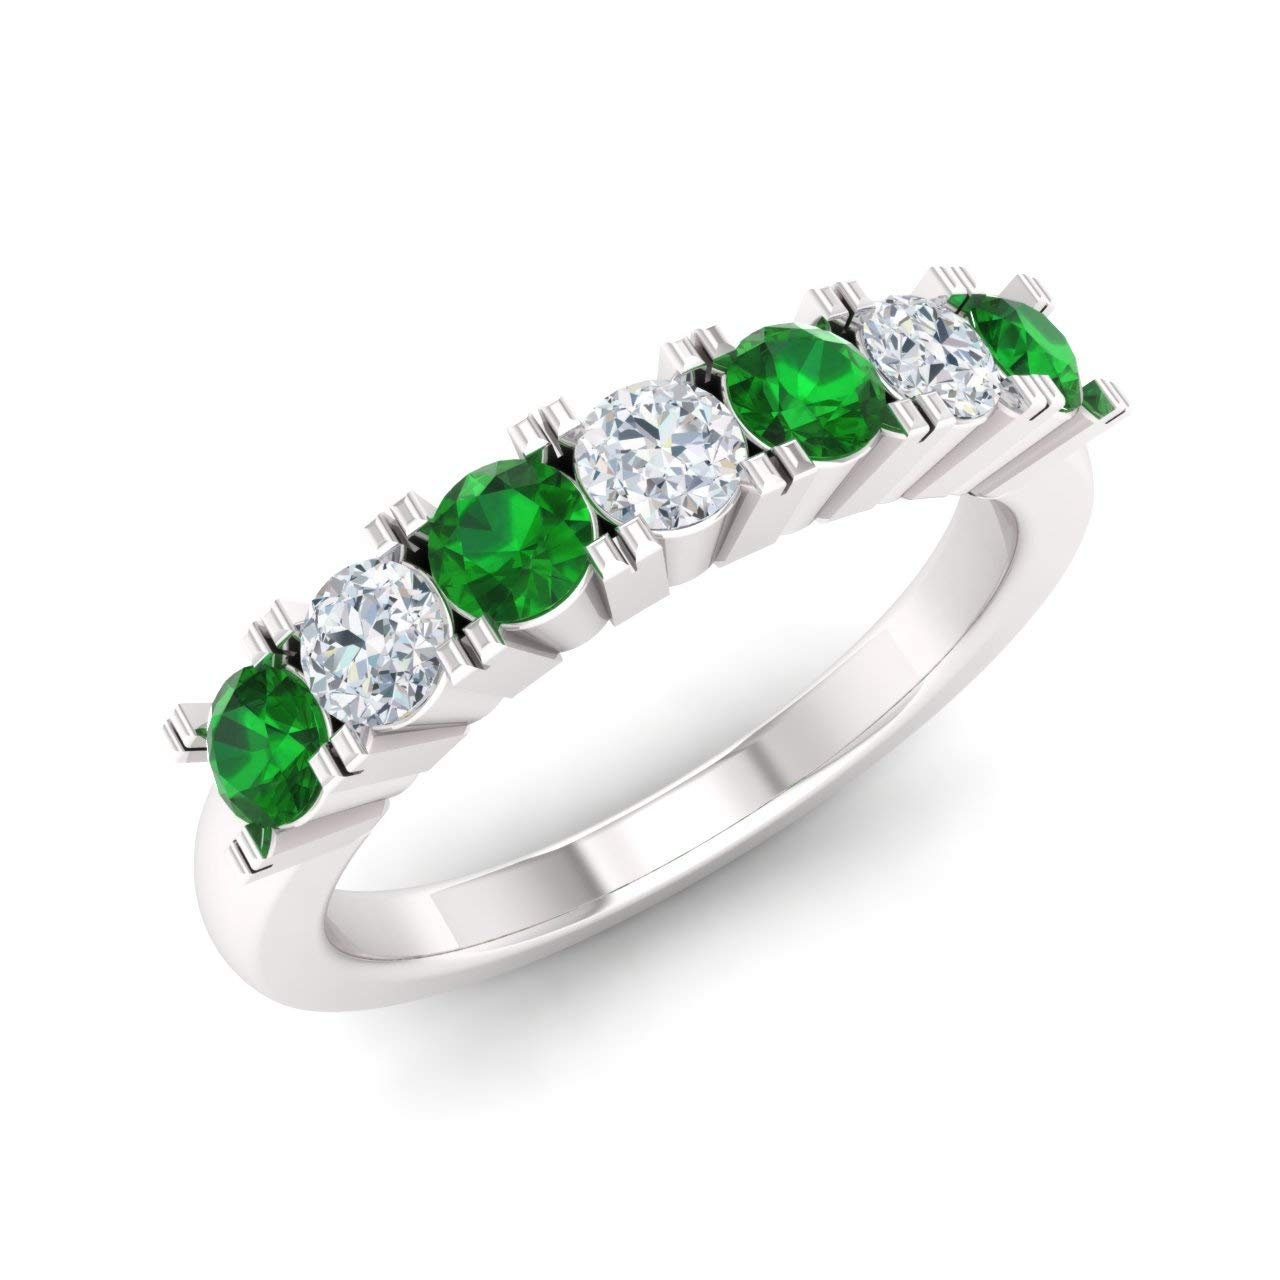 Diamondere Natural and Certified Emerald and Diamond Wedding Ring in 14K White Gold | 0.82 Carat Half Eternity Stackable Band for Women, US Size 7 by Diamondere